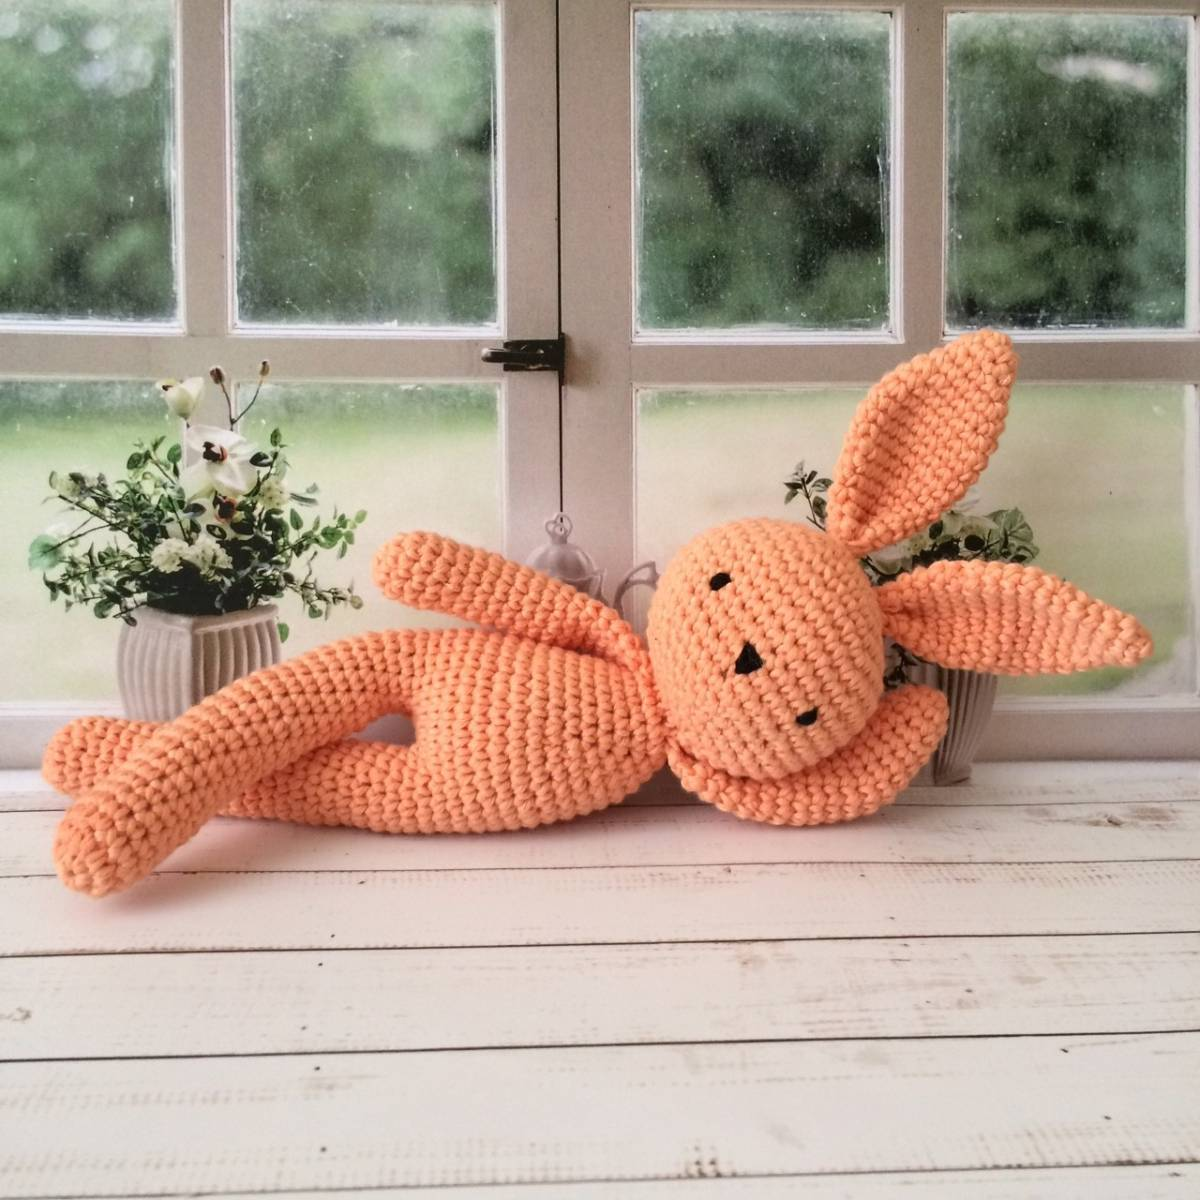 Amigurami Orange0